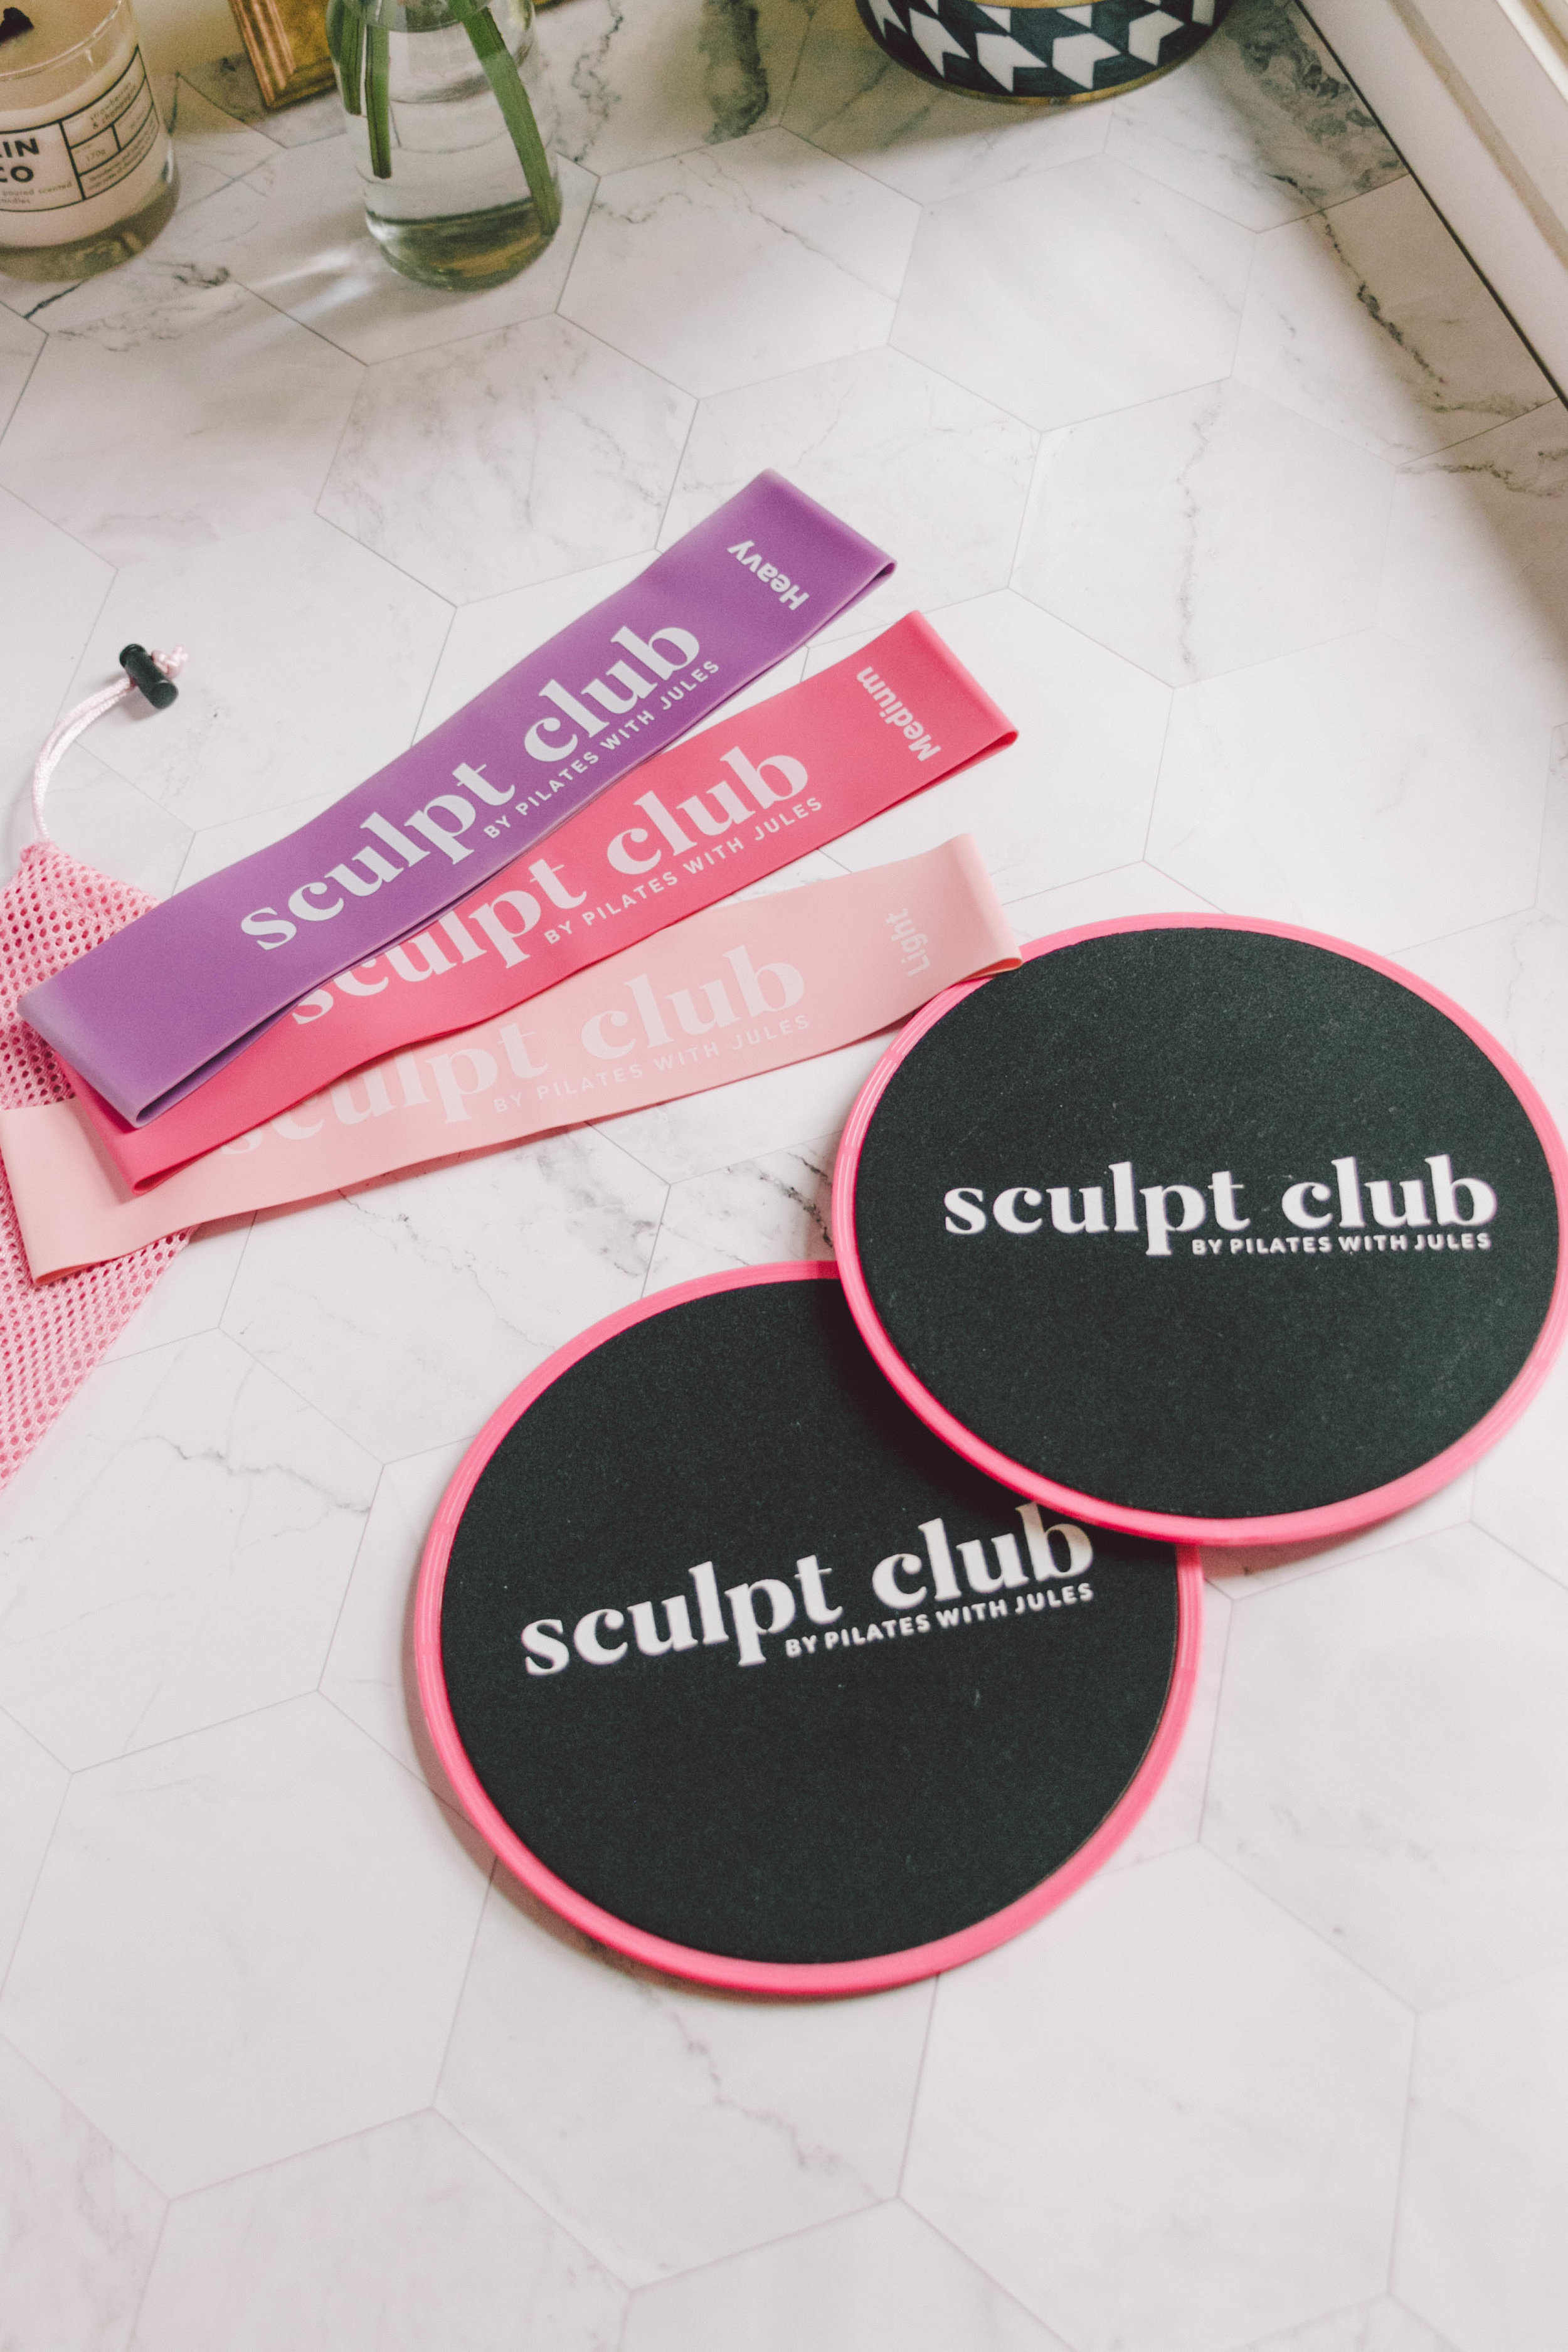 Sculpt Club Travel Kit - As much as I love reformer pilates, it's definitely not the most accessible way to workout, especially if you're travelling or want to workout from home. The Sculpt Club Travel Kit by Pilates with Jules comes in a cute tote bag with a set of sliders and resistant bands (in 3 levels of resistance). It makes doing the same low impact, strengthening and lengthening exercises on the go so much easier.I've been challenging myself by incorporating the sliders and resistant bands into my workouts to work my core and other areas of weakness more.